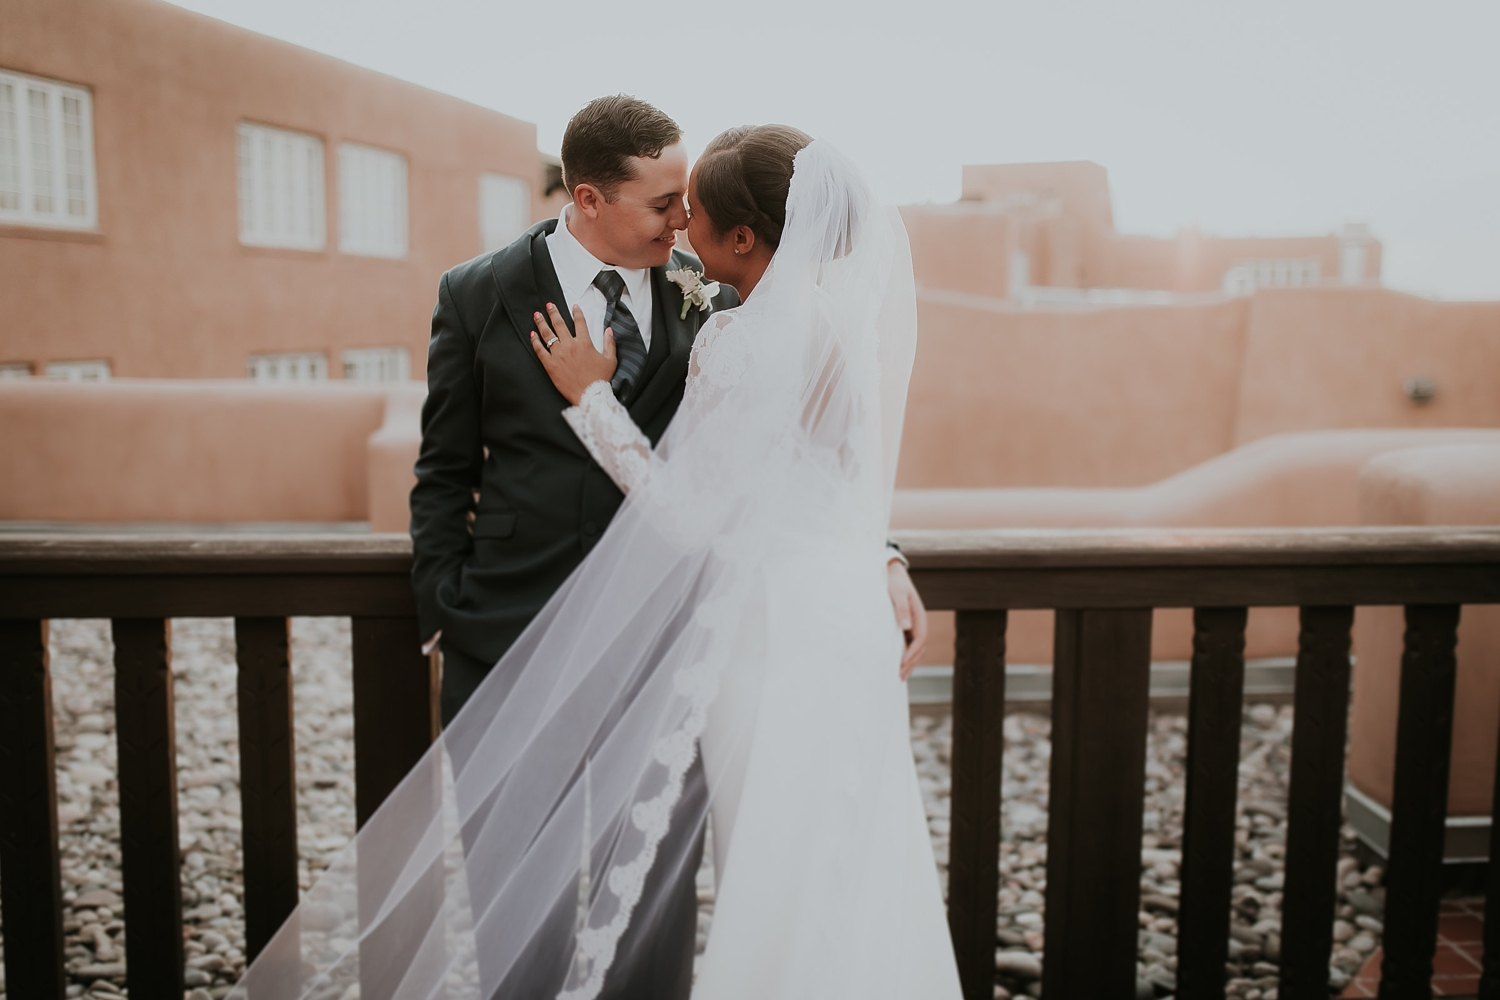 Alicia+lucia+photography+-+albuquerque+wedding+photographer+-+santa+fe+wedding+photography+-+new+mexico+wedding+photographer+-+new+mexico+engagement+-+la+fonda+new+mexico+wedding+-+la+fonda+fall+wedding_0072.jpg